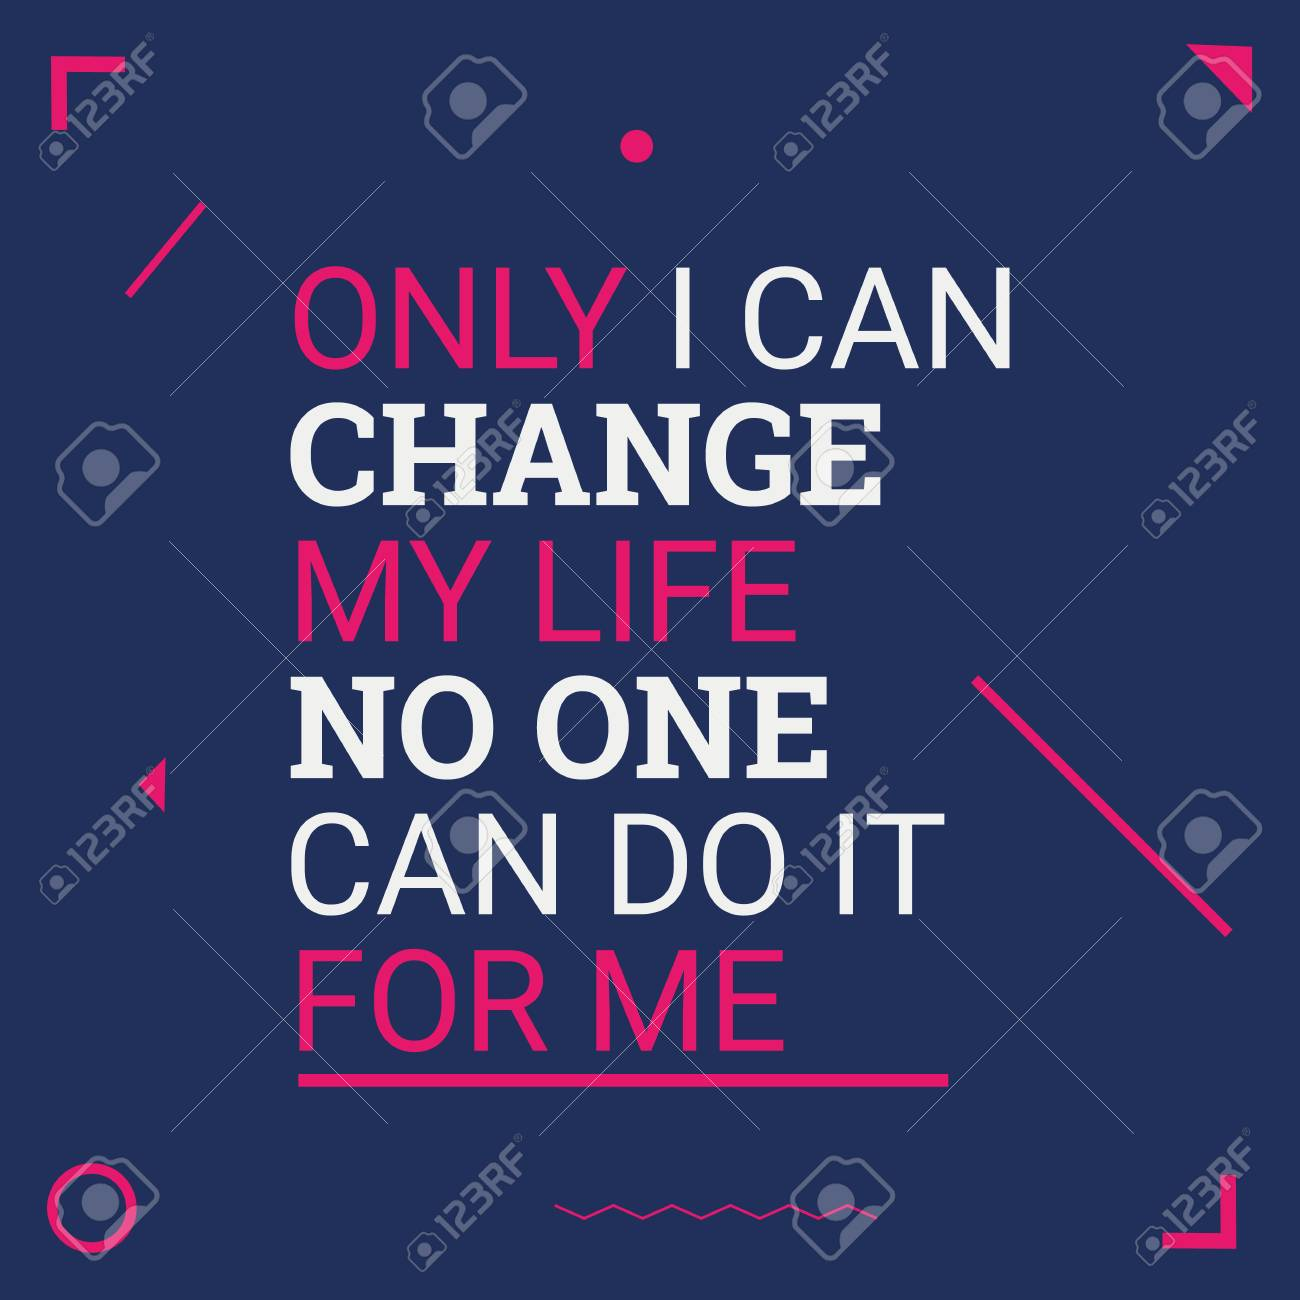 Only I Can Change My Life Motivational Quotes Flat Design Background Stock Photo Picture And Royalty Free Image Image 89131031